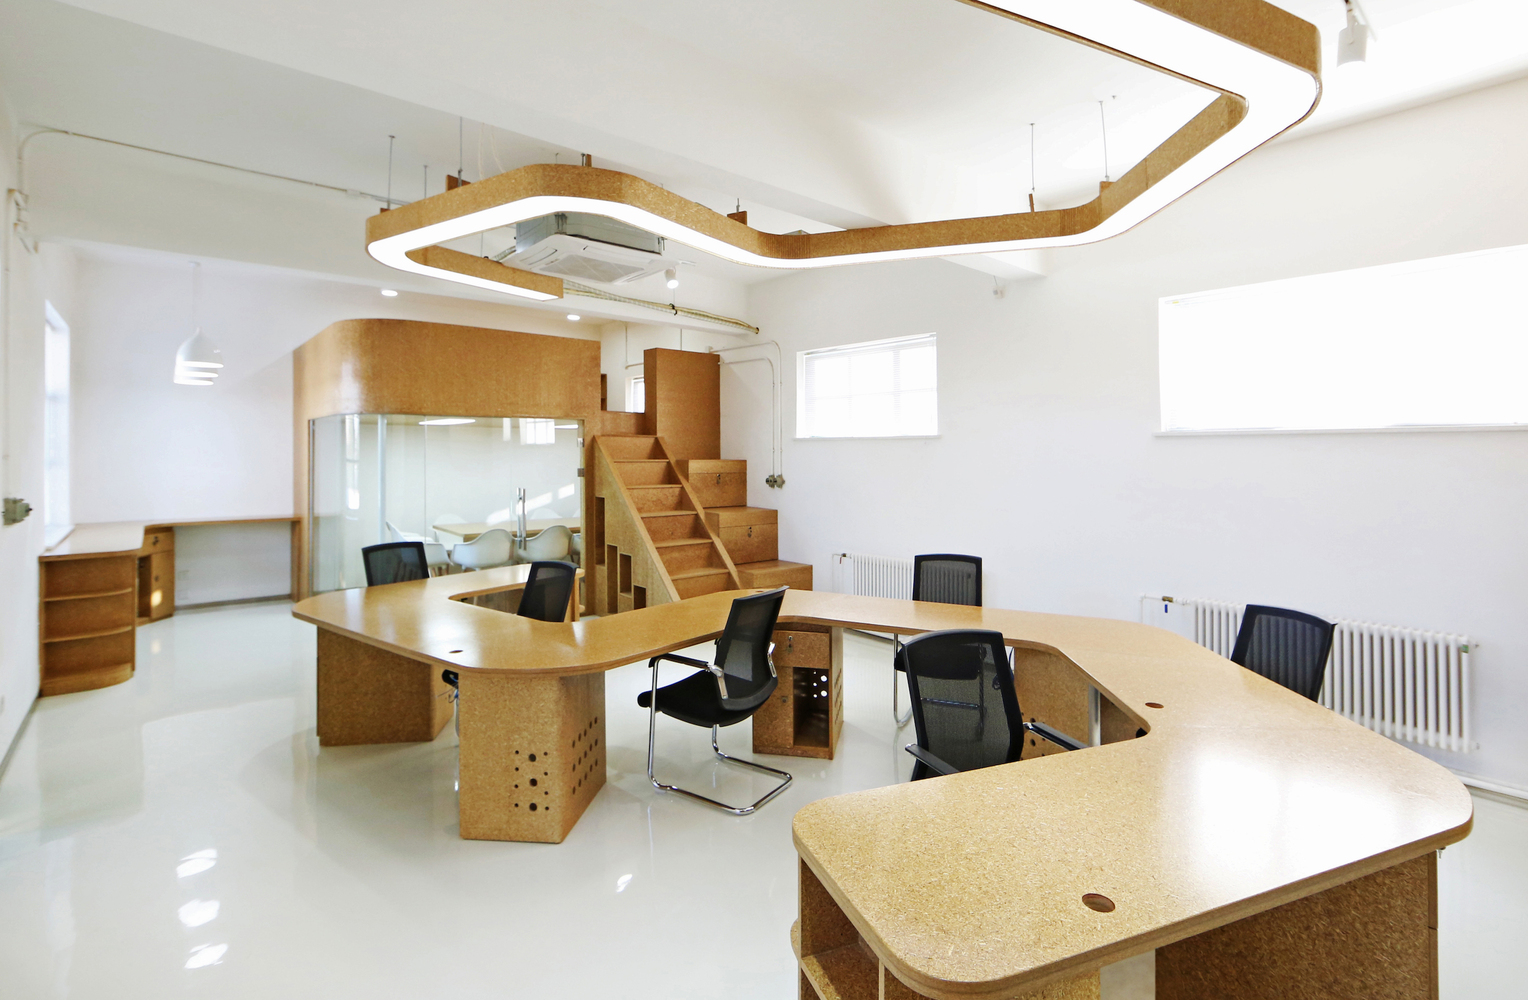 industrial office design. 751 creative industrial office design hypersity h